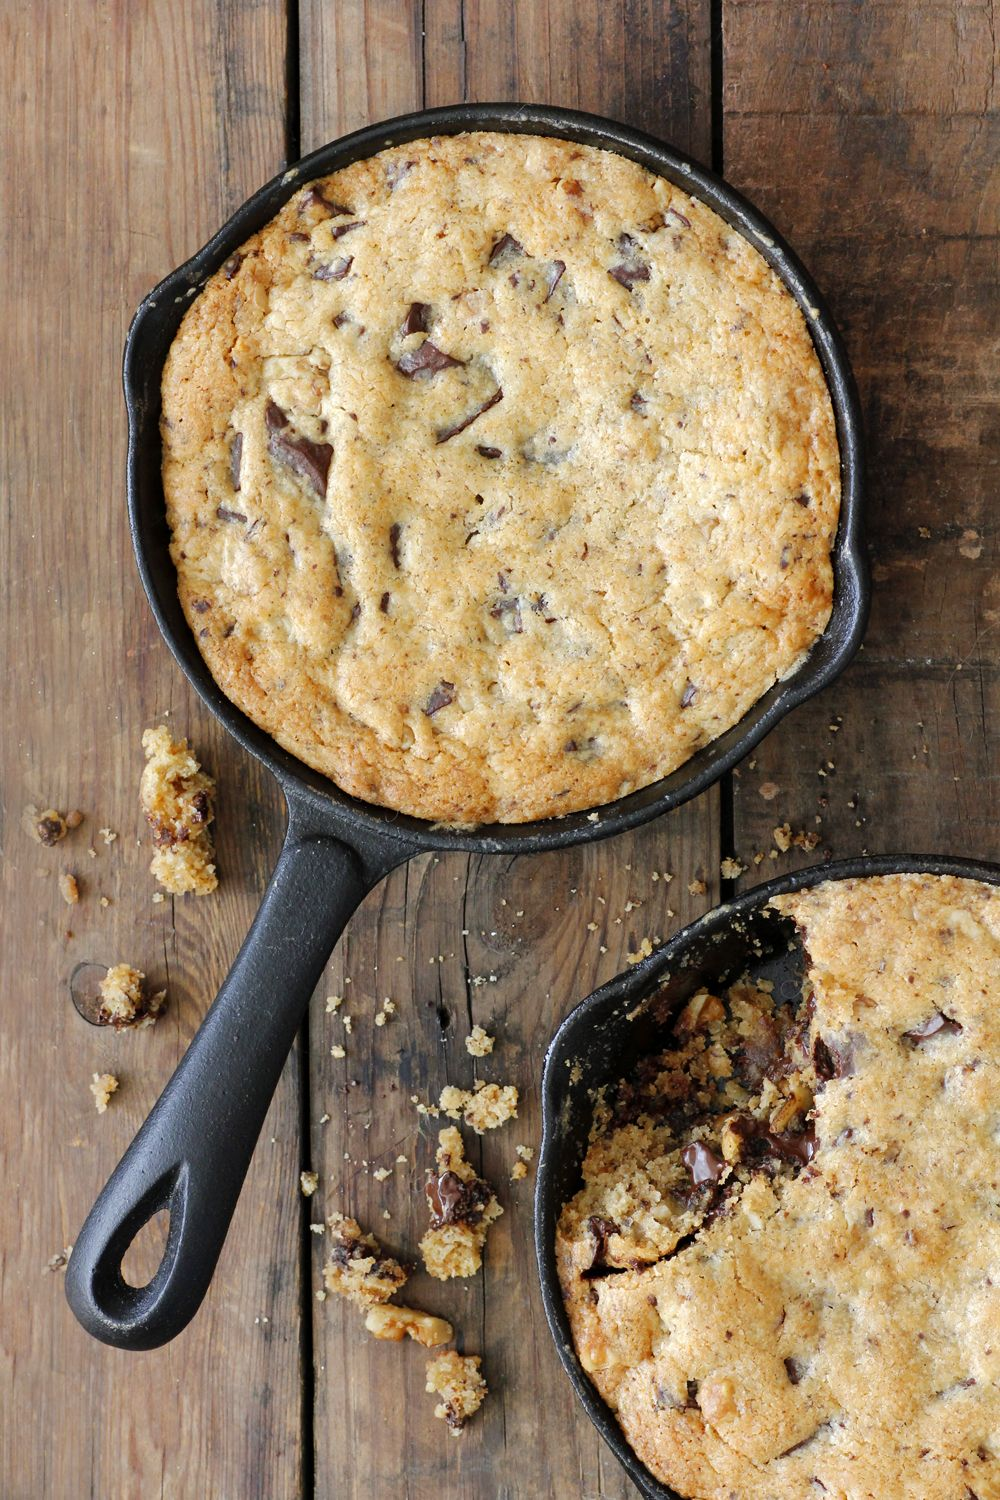 Giant Chocolate Chip Cookie in a Pan with Peanut Butter and Walnuts